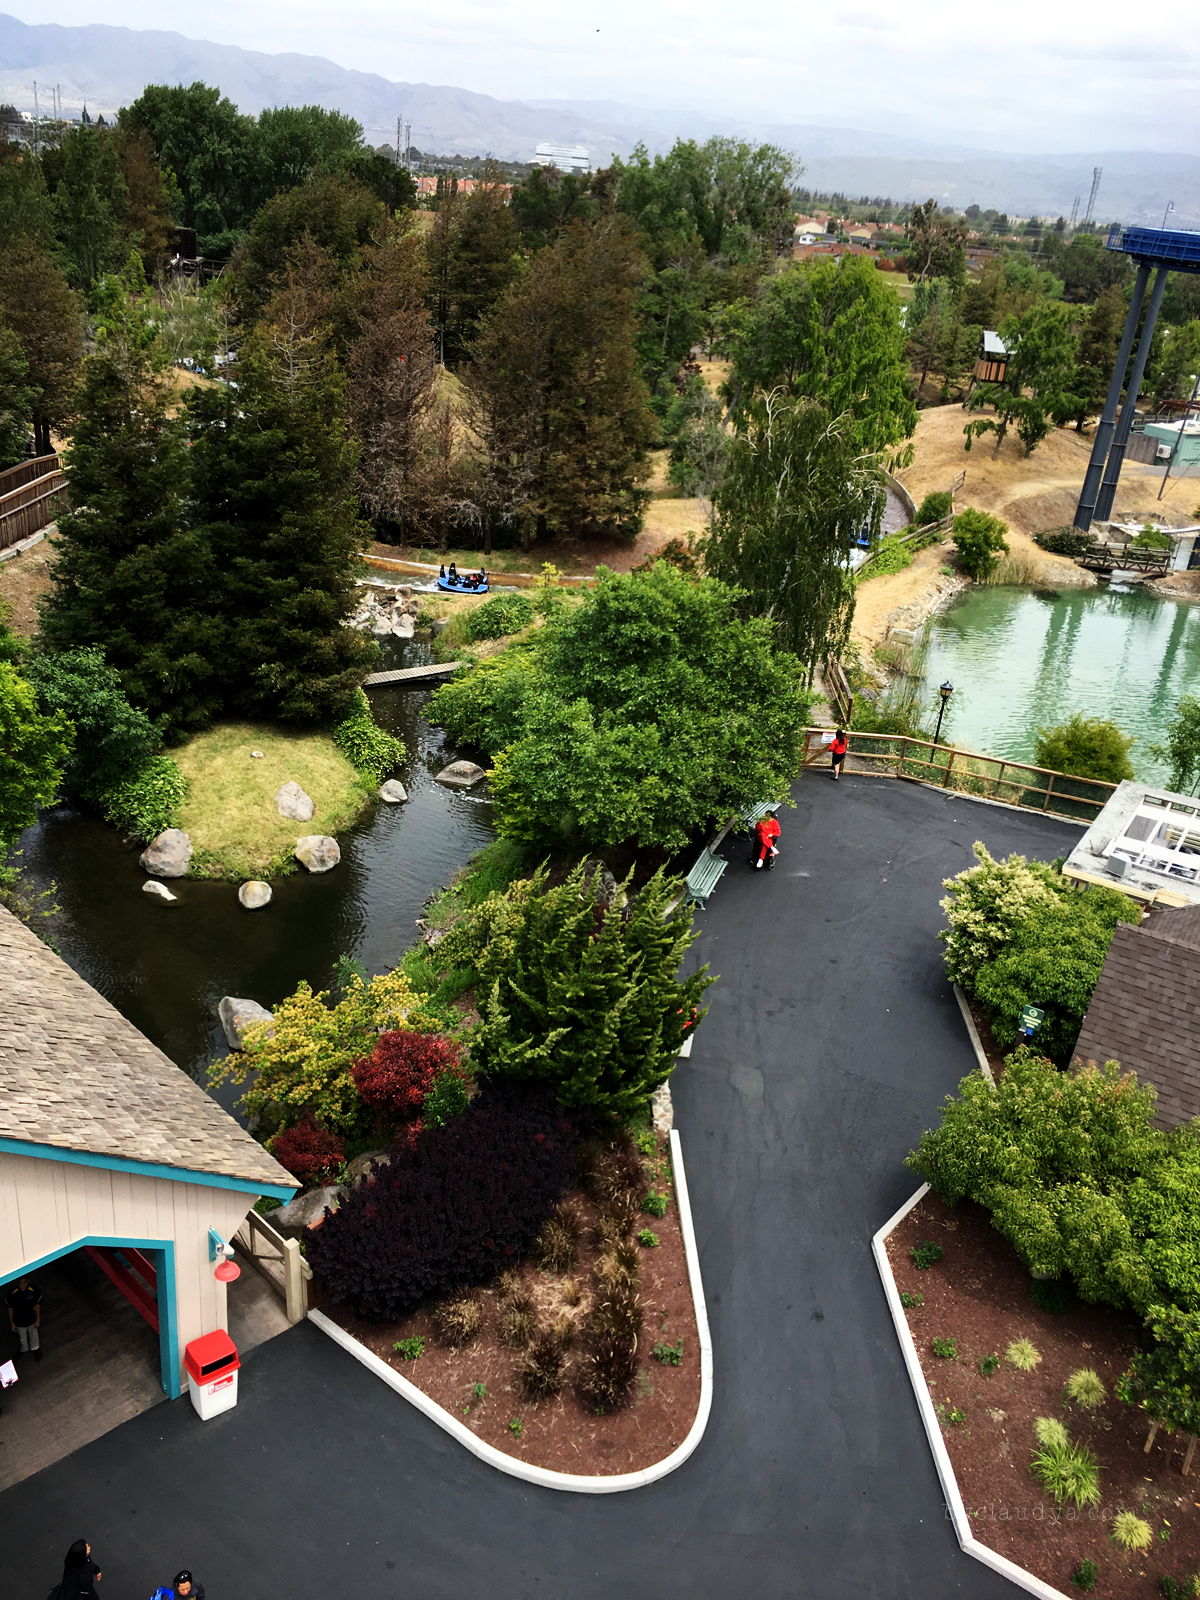 California's Great America from gondola view